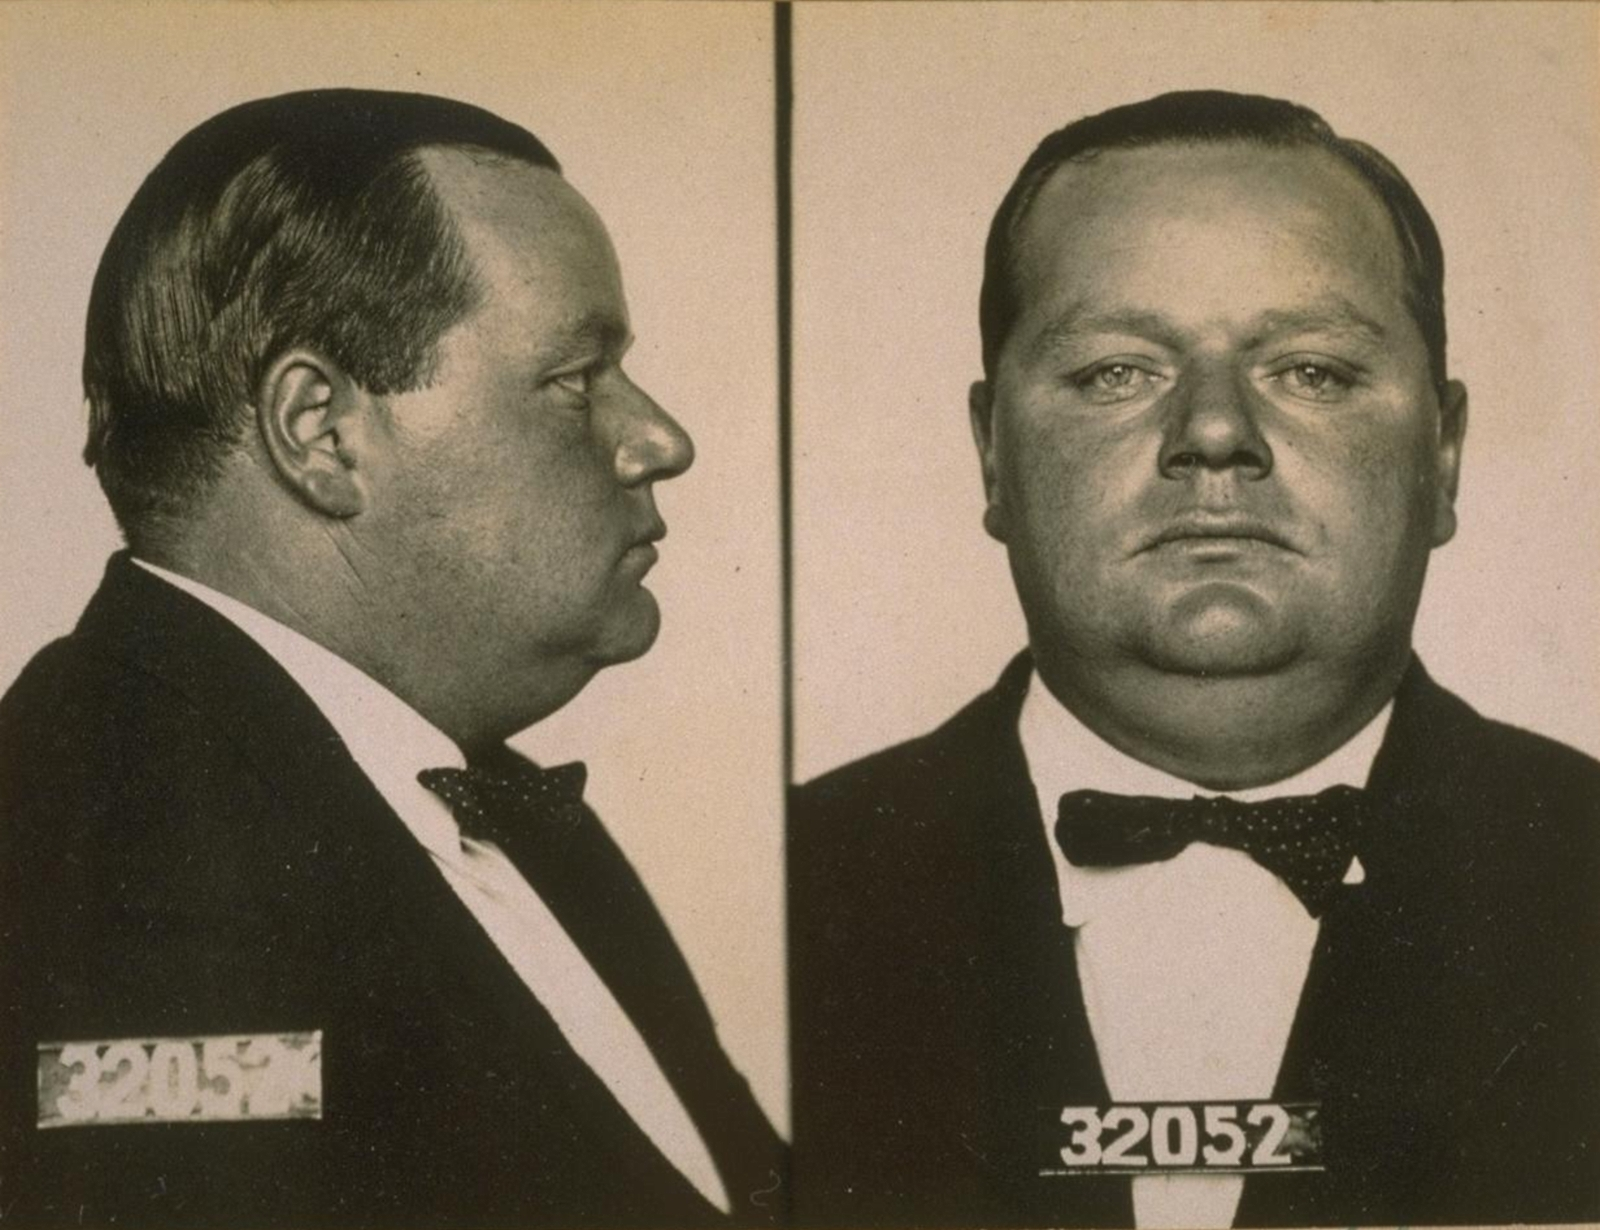 Arbuckle's Mug Shot 1921